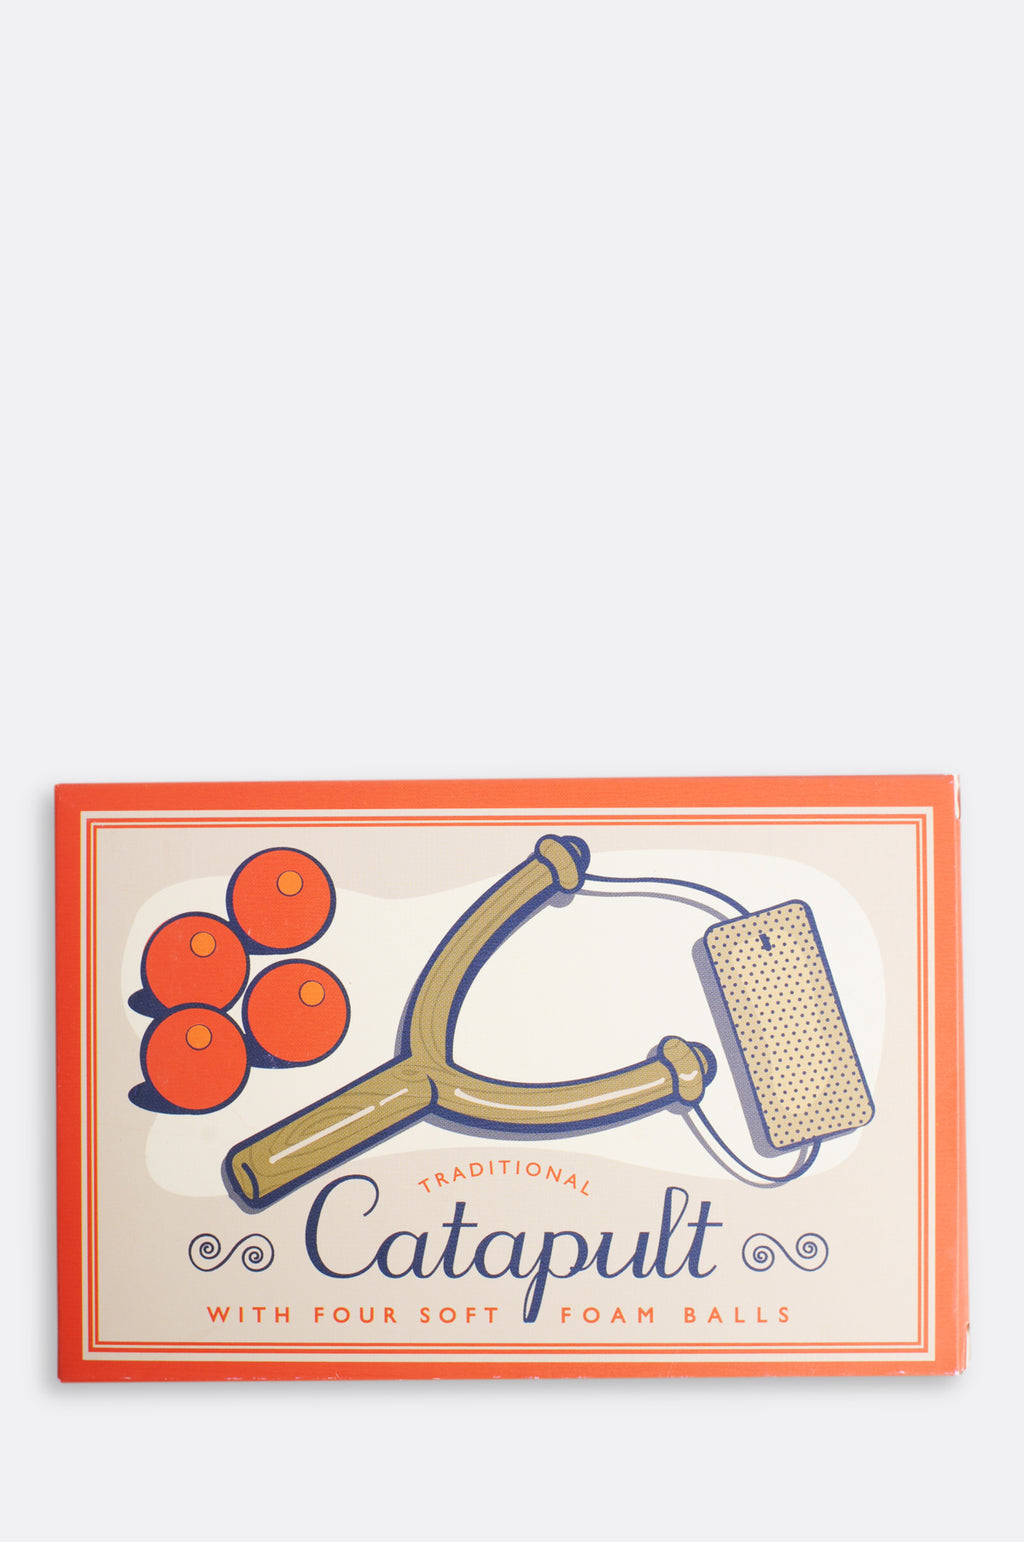 Catapult Toy